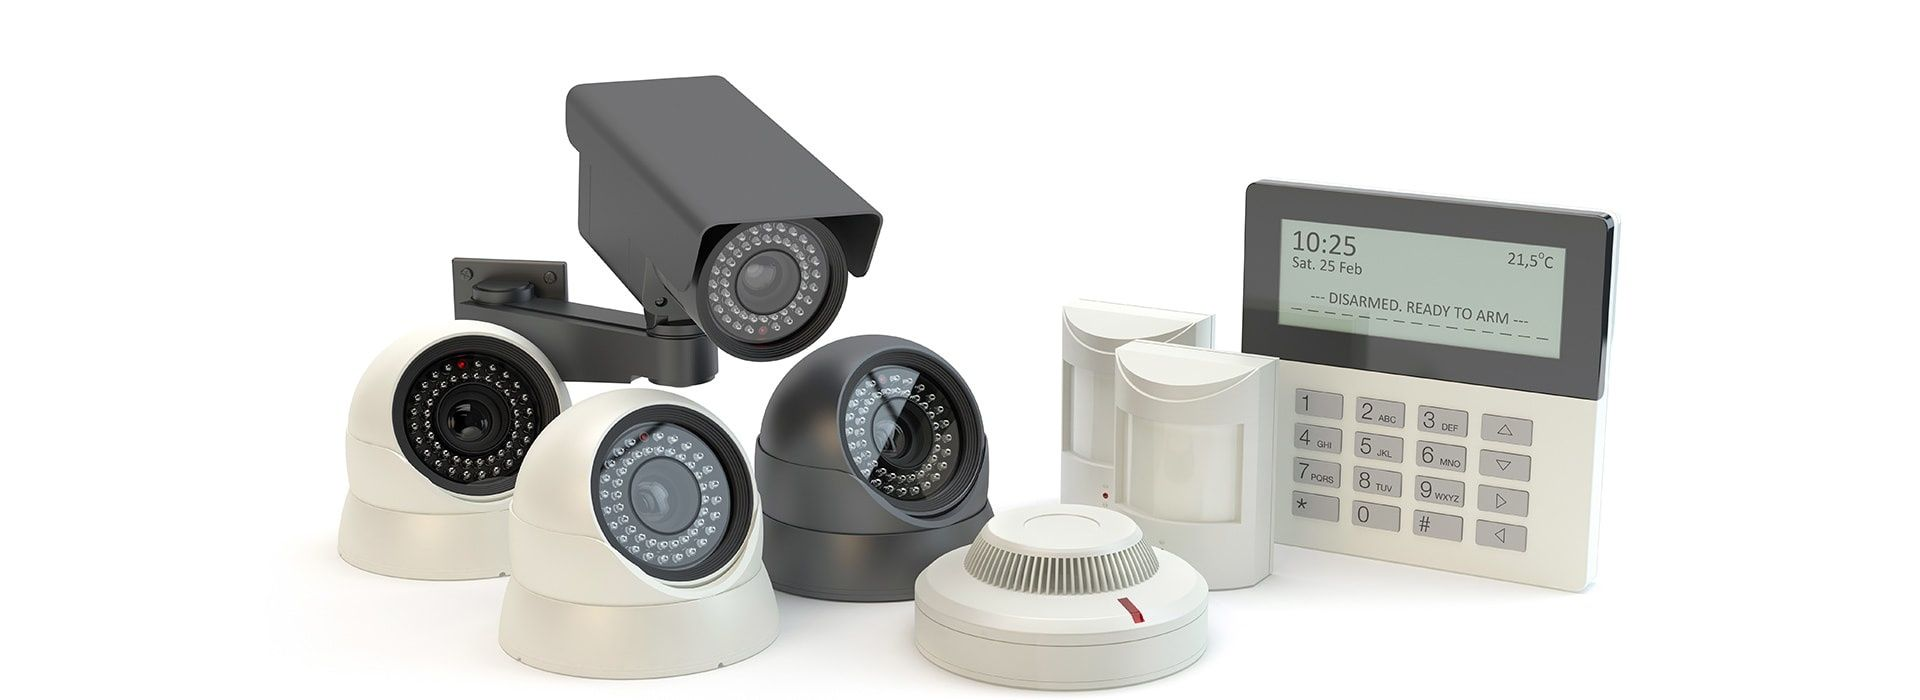 The Best Home Security System Home Security Systems Best Home Security Home Security